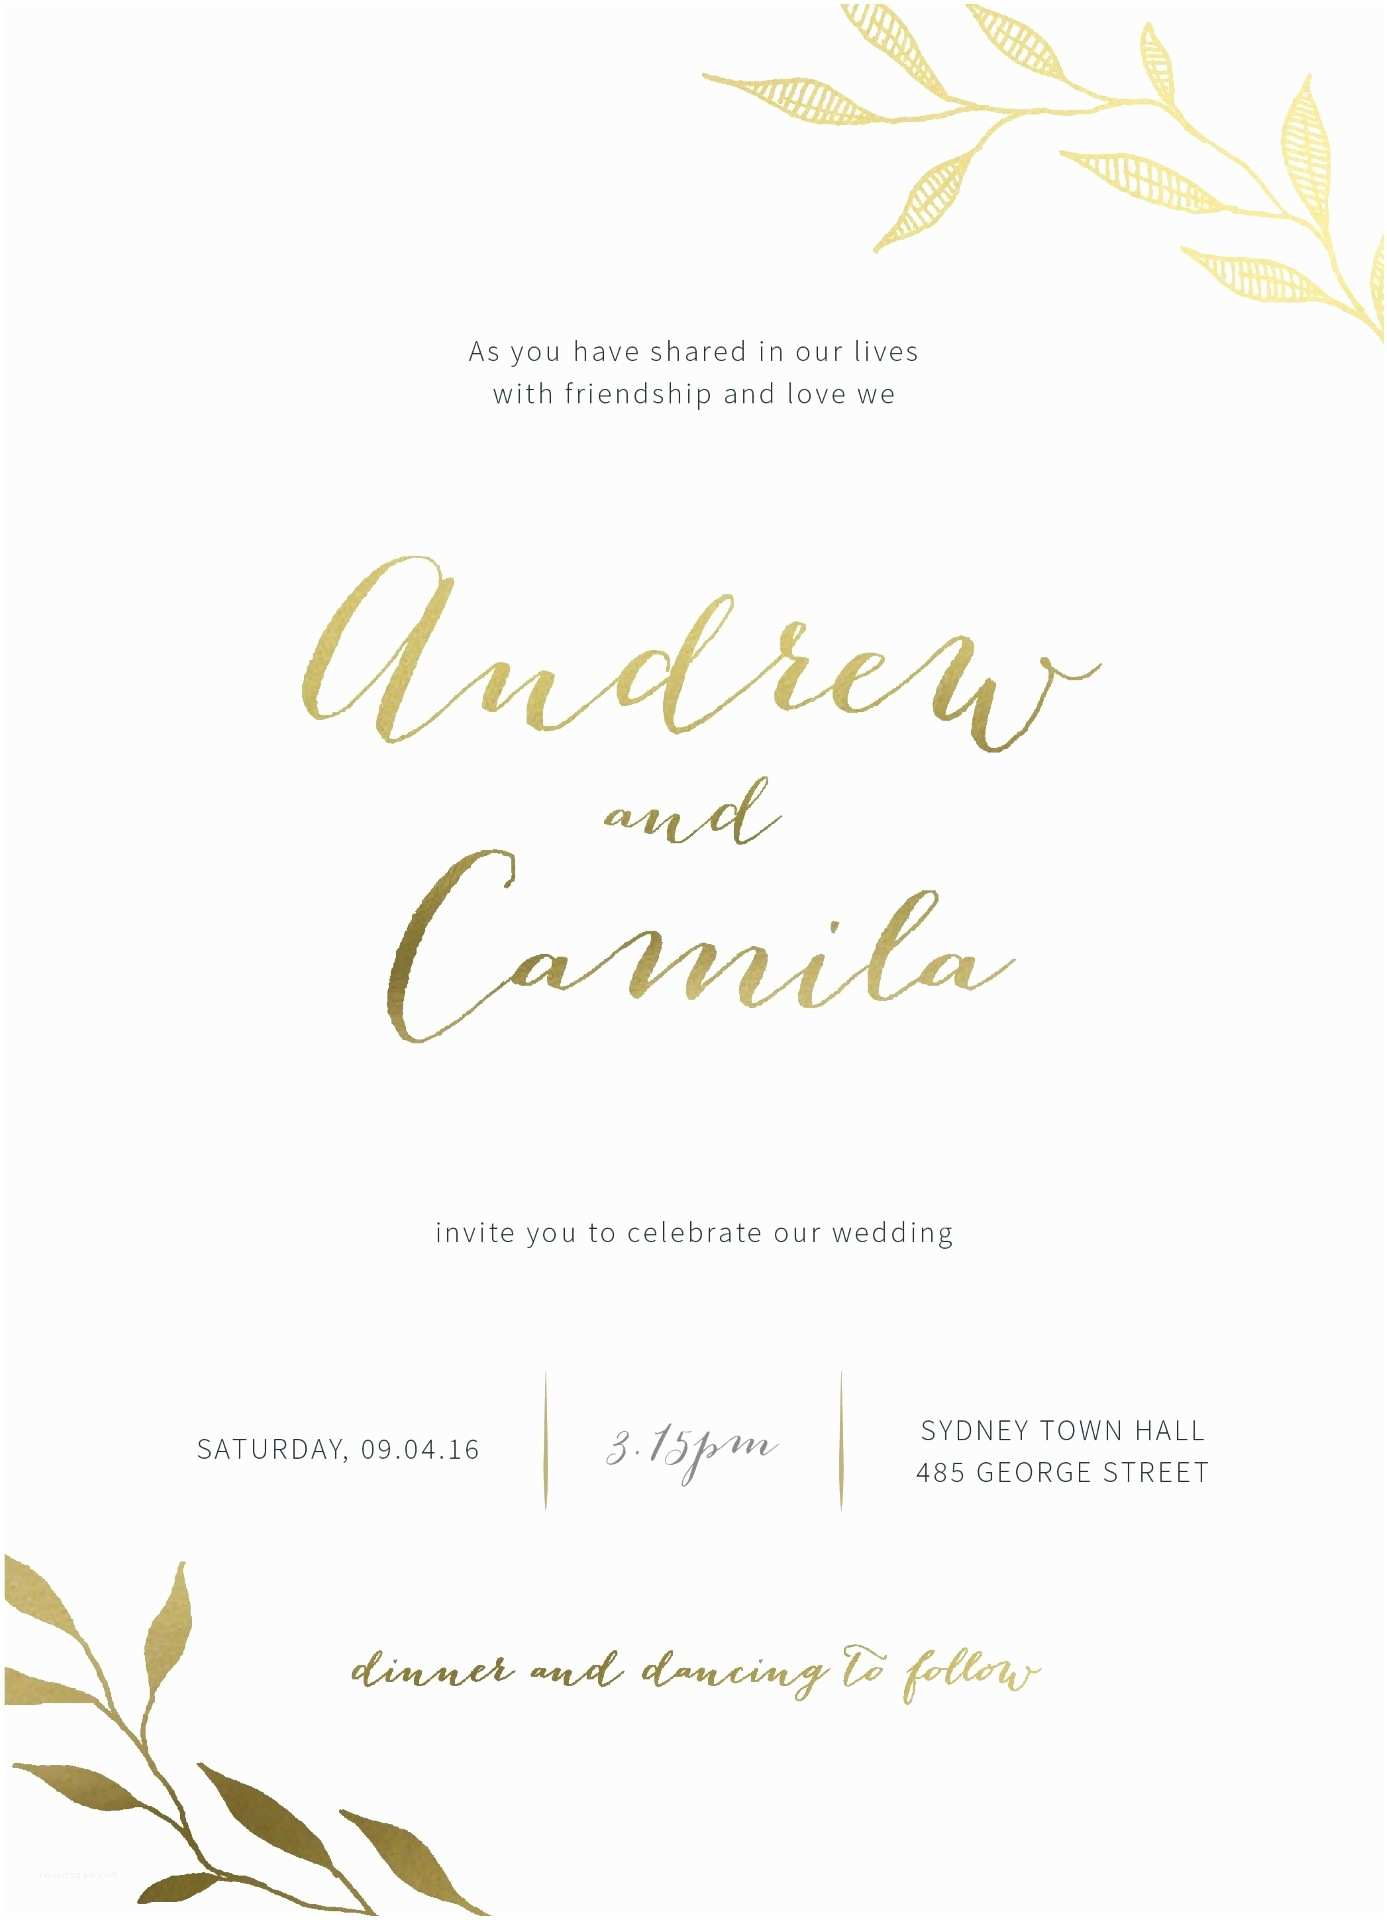 Invitation Wording for Adults Only Party Invitation Wording for Adults Ly Party Choice Image